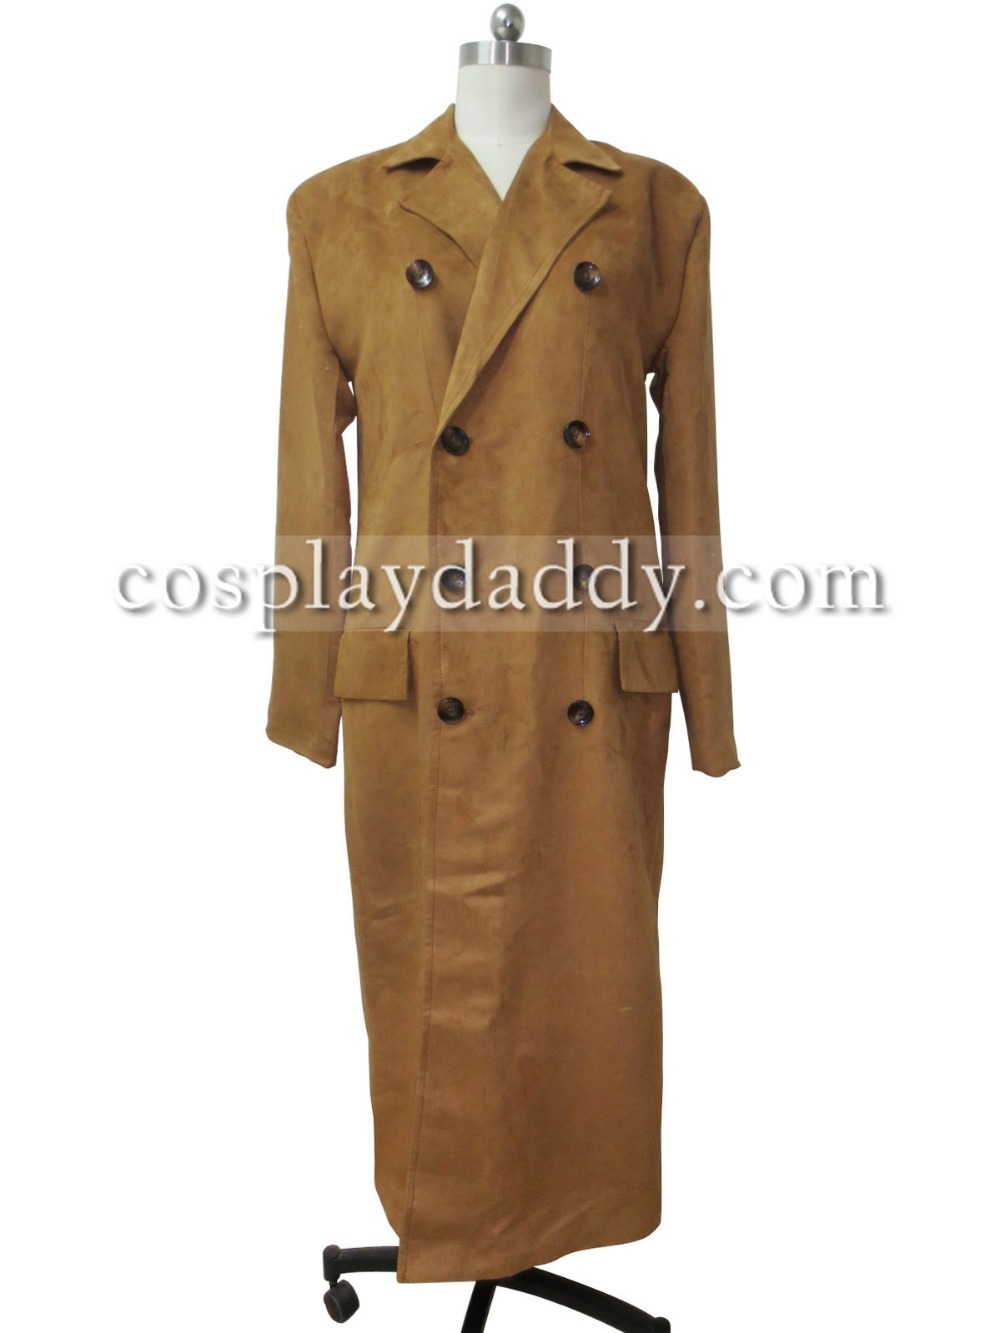 Who is Doctor Dr.Trench Coat Casual Jacket Business Suit Cosplay Costume Outfit